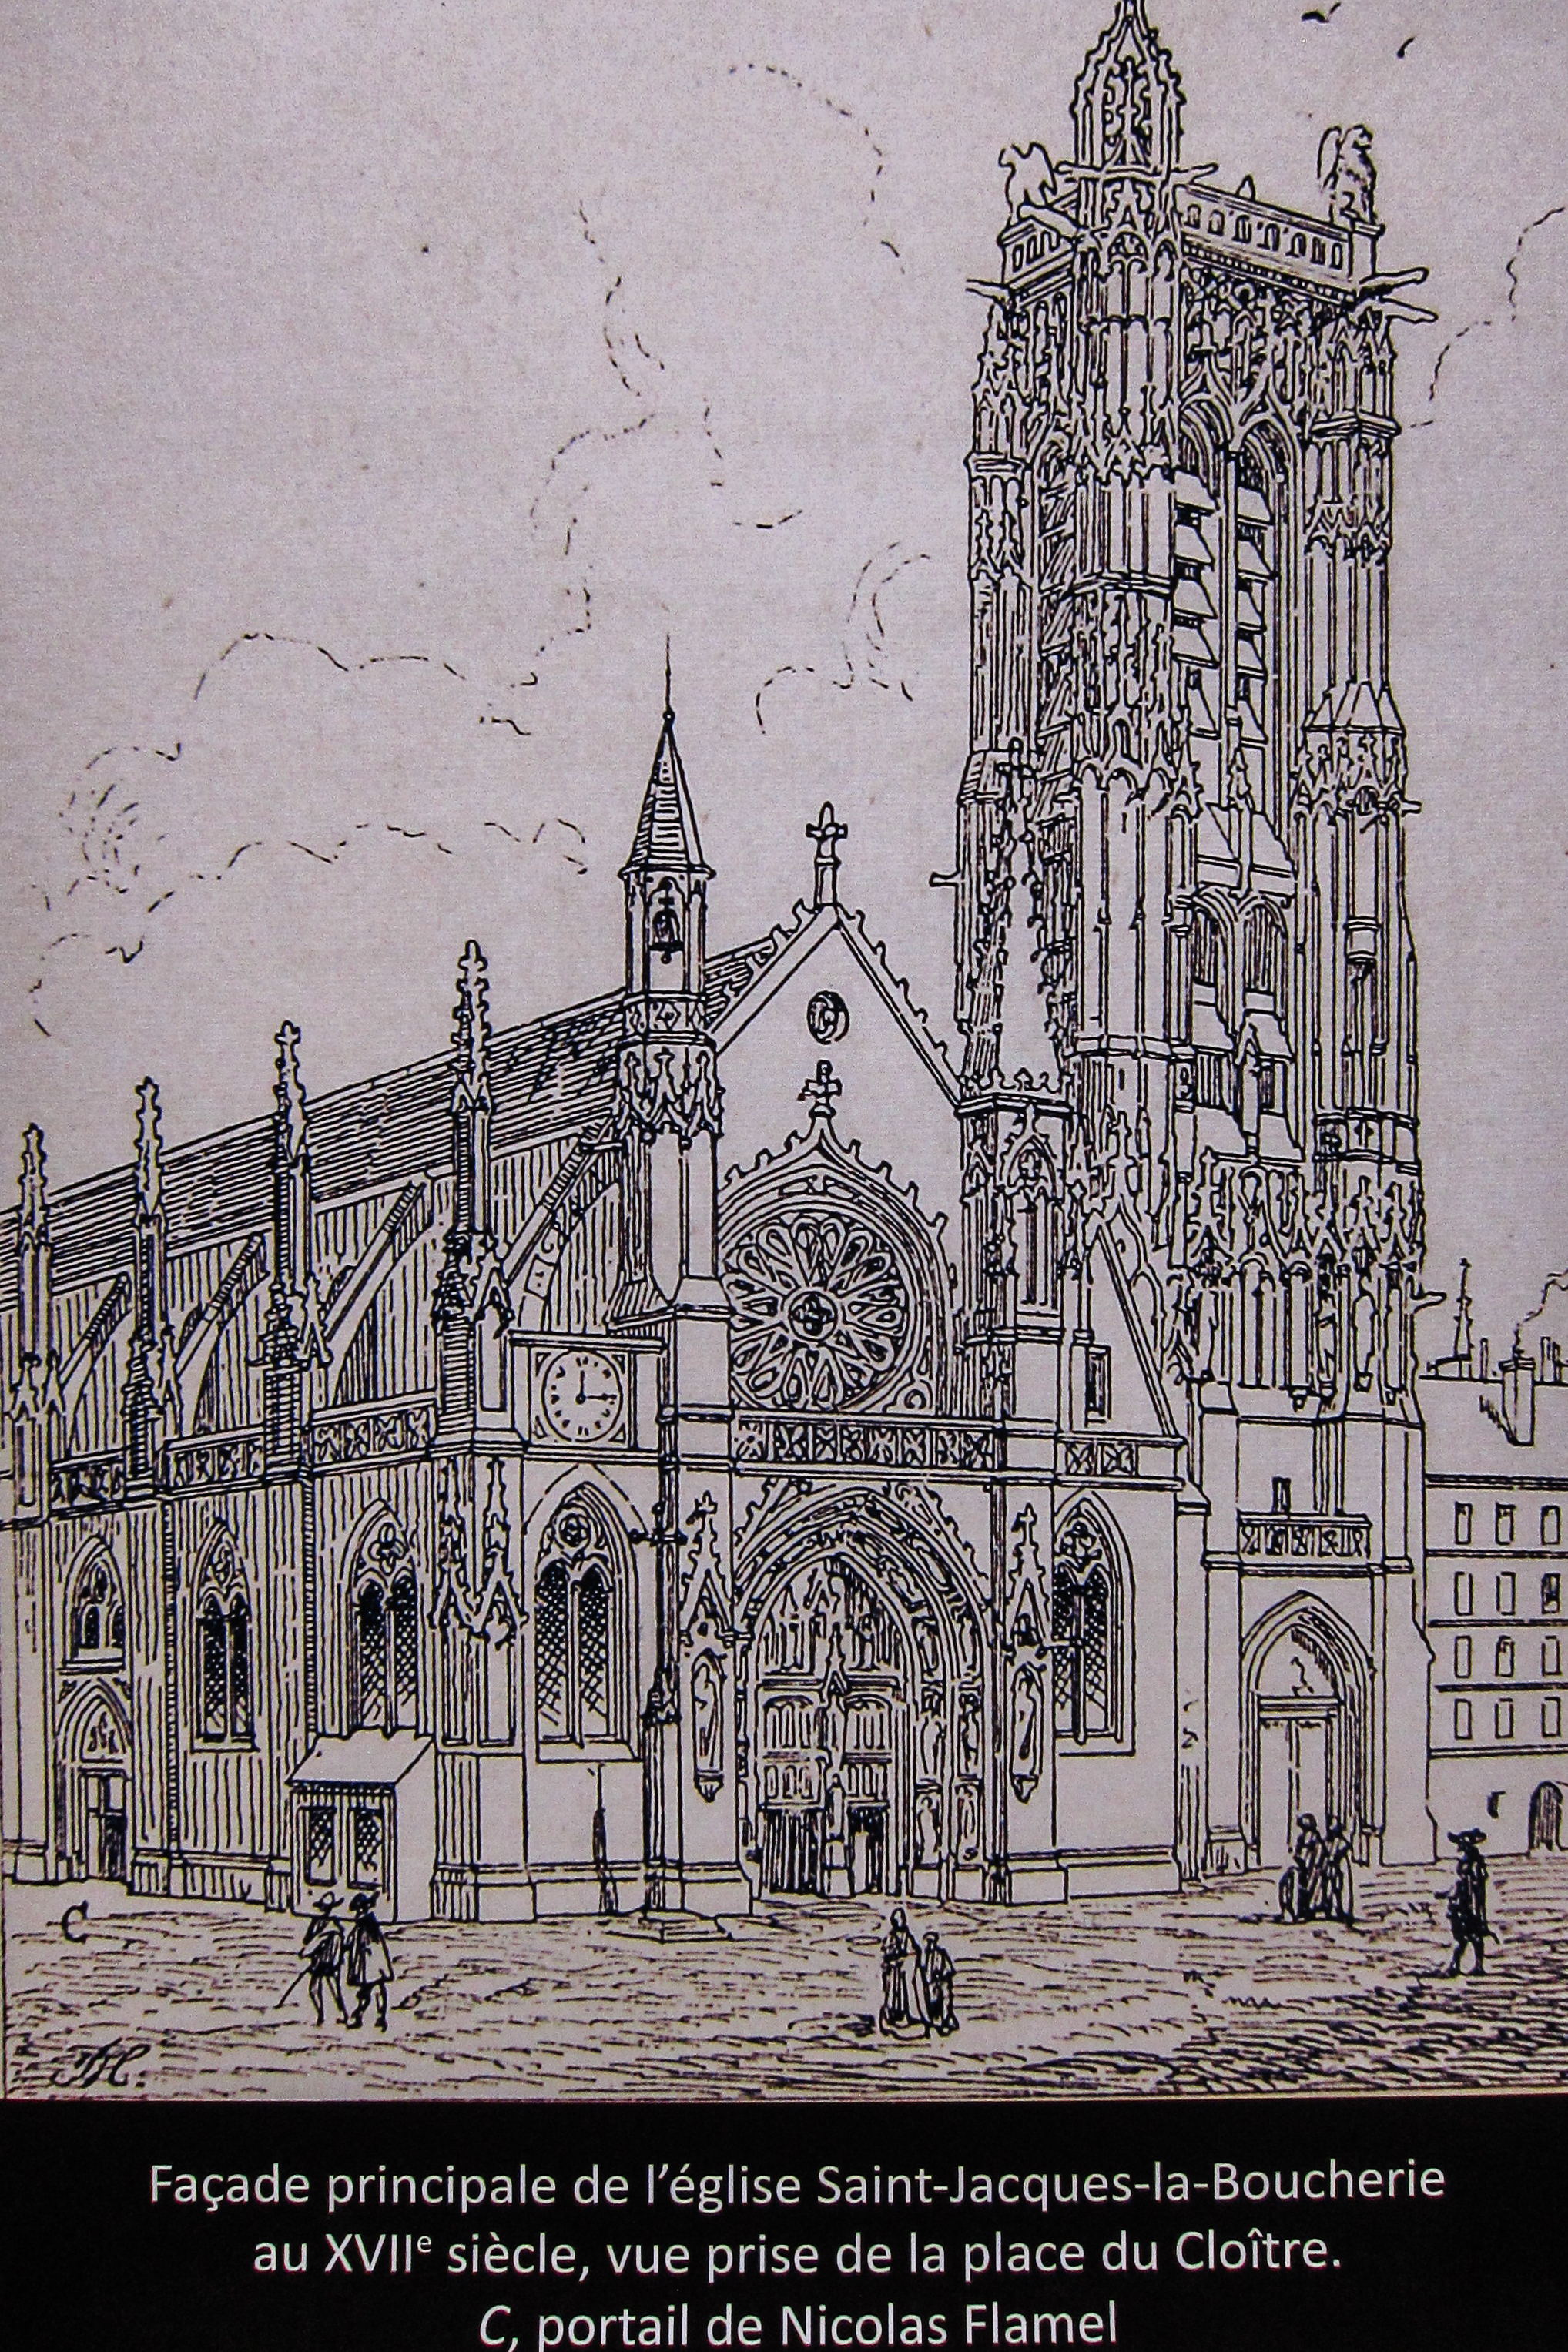 """This was a drawing we saw on the tour to illustrate the church that the tower once accompanied. Translation: """"Principal facade of the Church of Saint-Jacques-la-Boucherie from the 17th century,view taken from the place of the Cloister."""""""